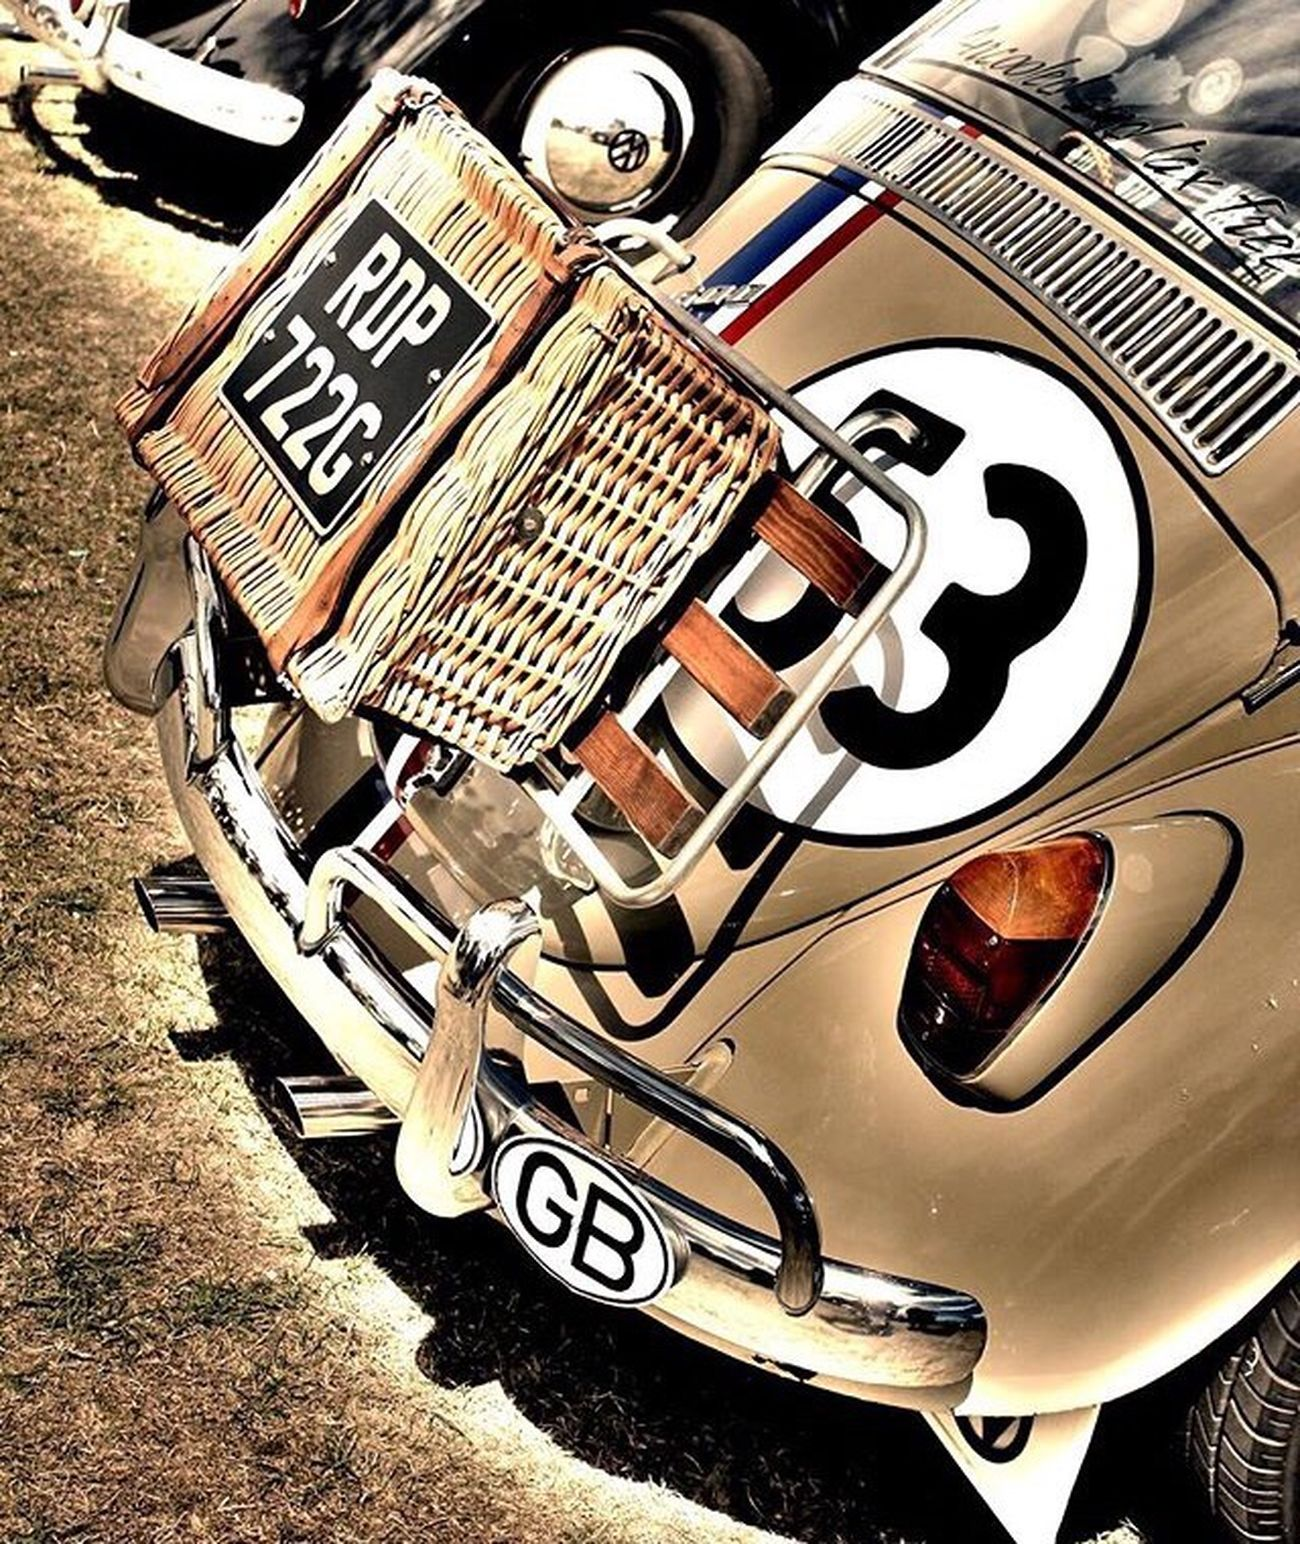 VW Beetle Type1 Aircooled Aircooled_takeover Herbie Beachbuggin